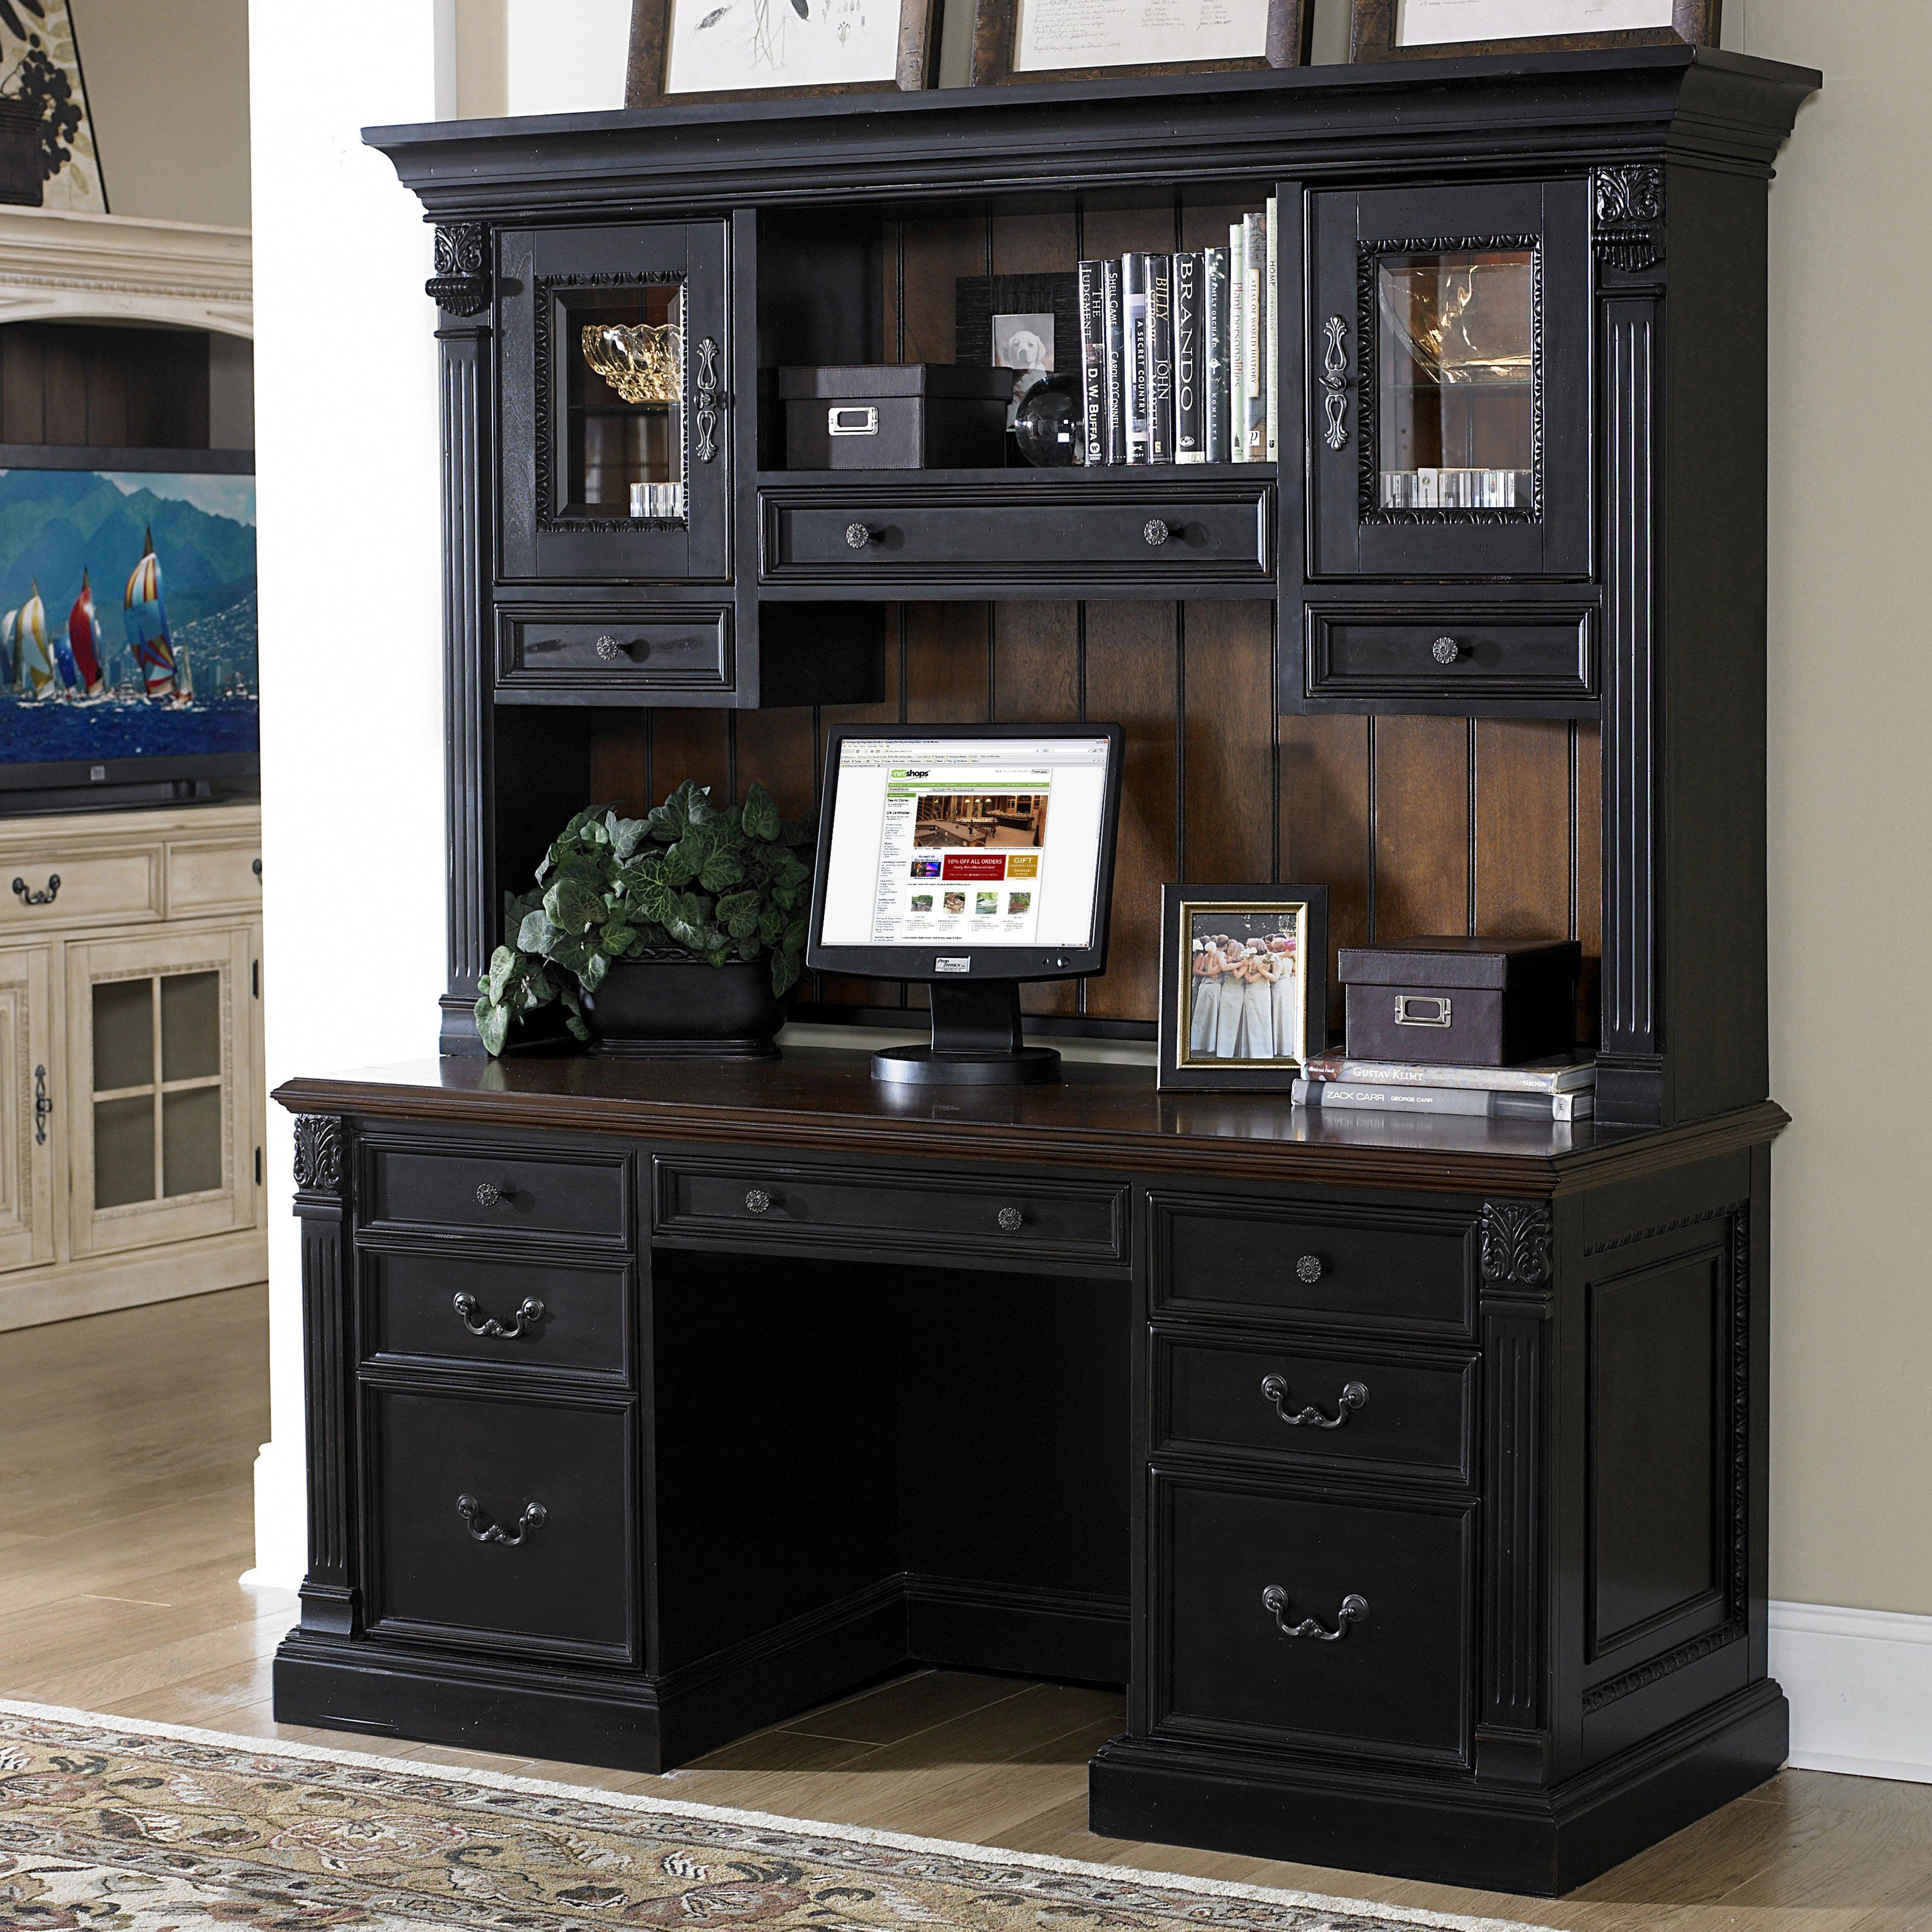 Riverside Weybridge Credenza Computer Desk With Hutch Cherry Black Relaxed Sophistication And Richness Combine In The Timeless